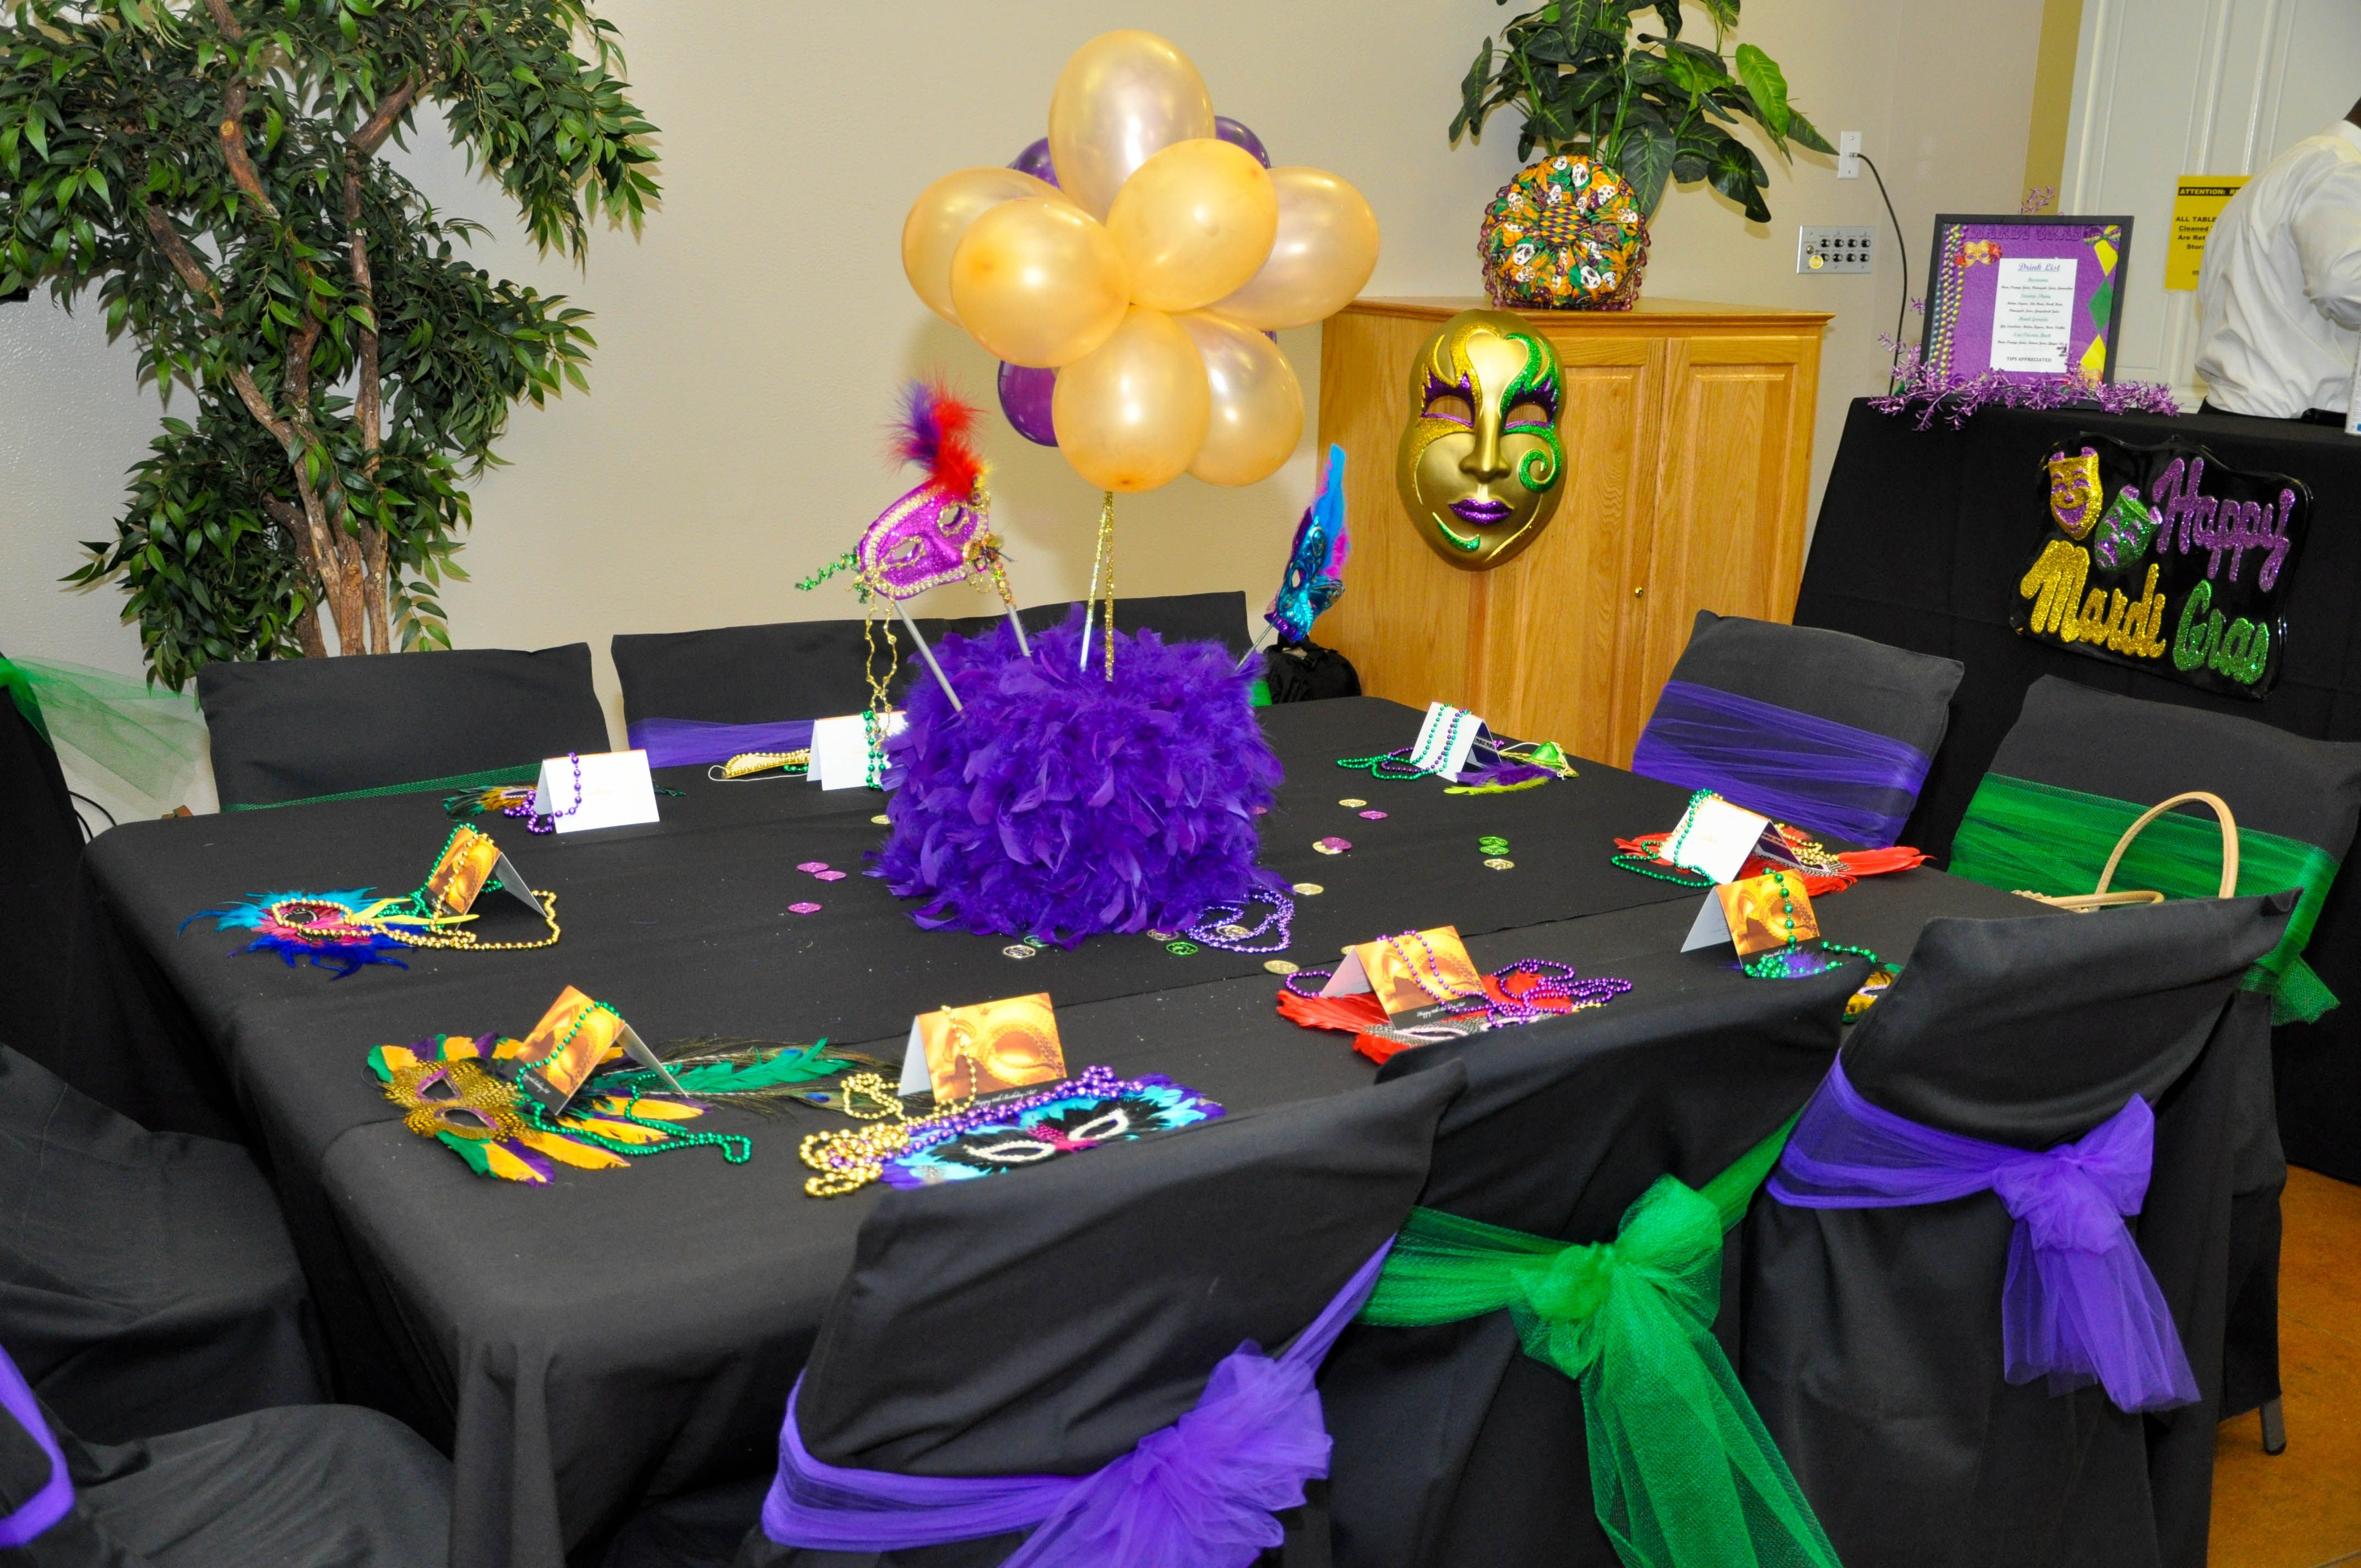 My Mom Sisters And I Planned A Surprise 60th Birthday Party For Dad Using Mardi Gras Theme All Of Our Masks Were Home Made As Well The